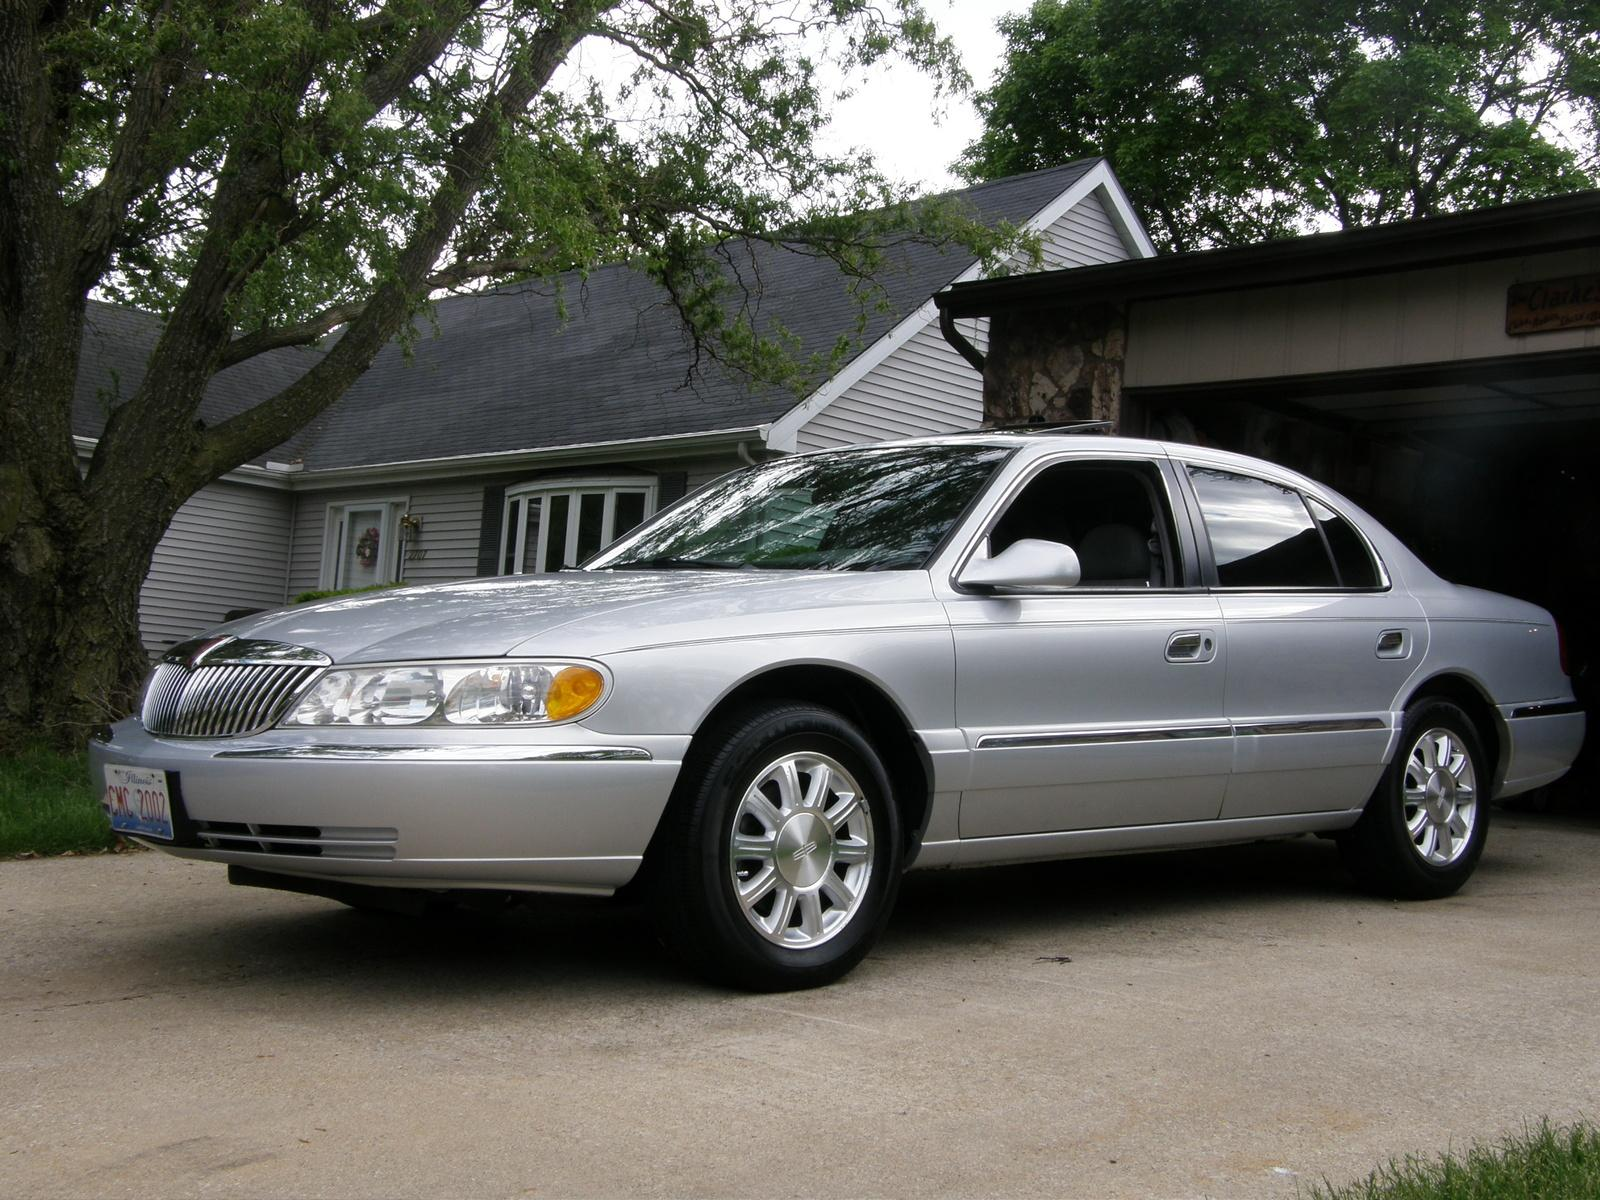 2000 lincoln continental information and photos zombiedrive. Black Bedroom Furniture Sets. Home Design Ideas